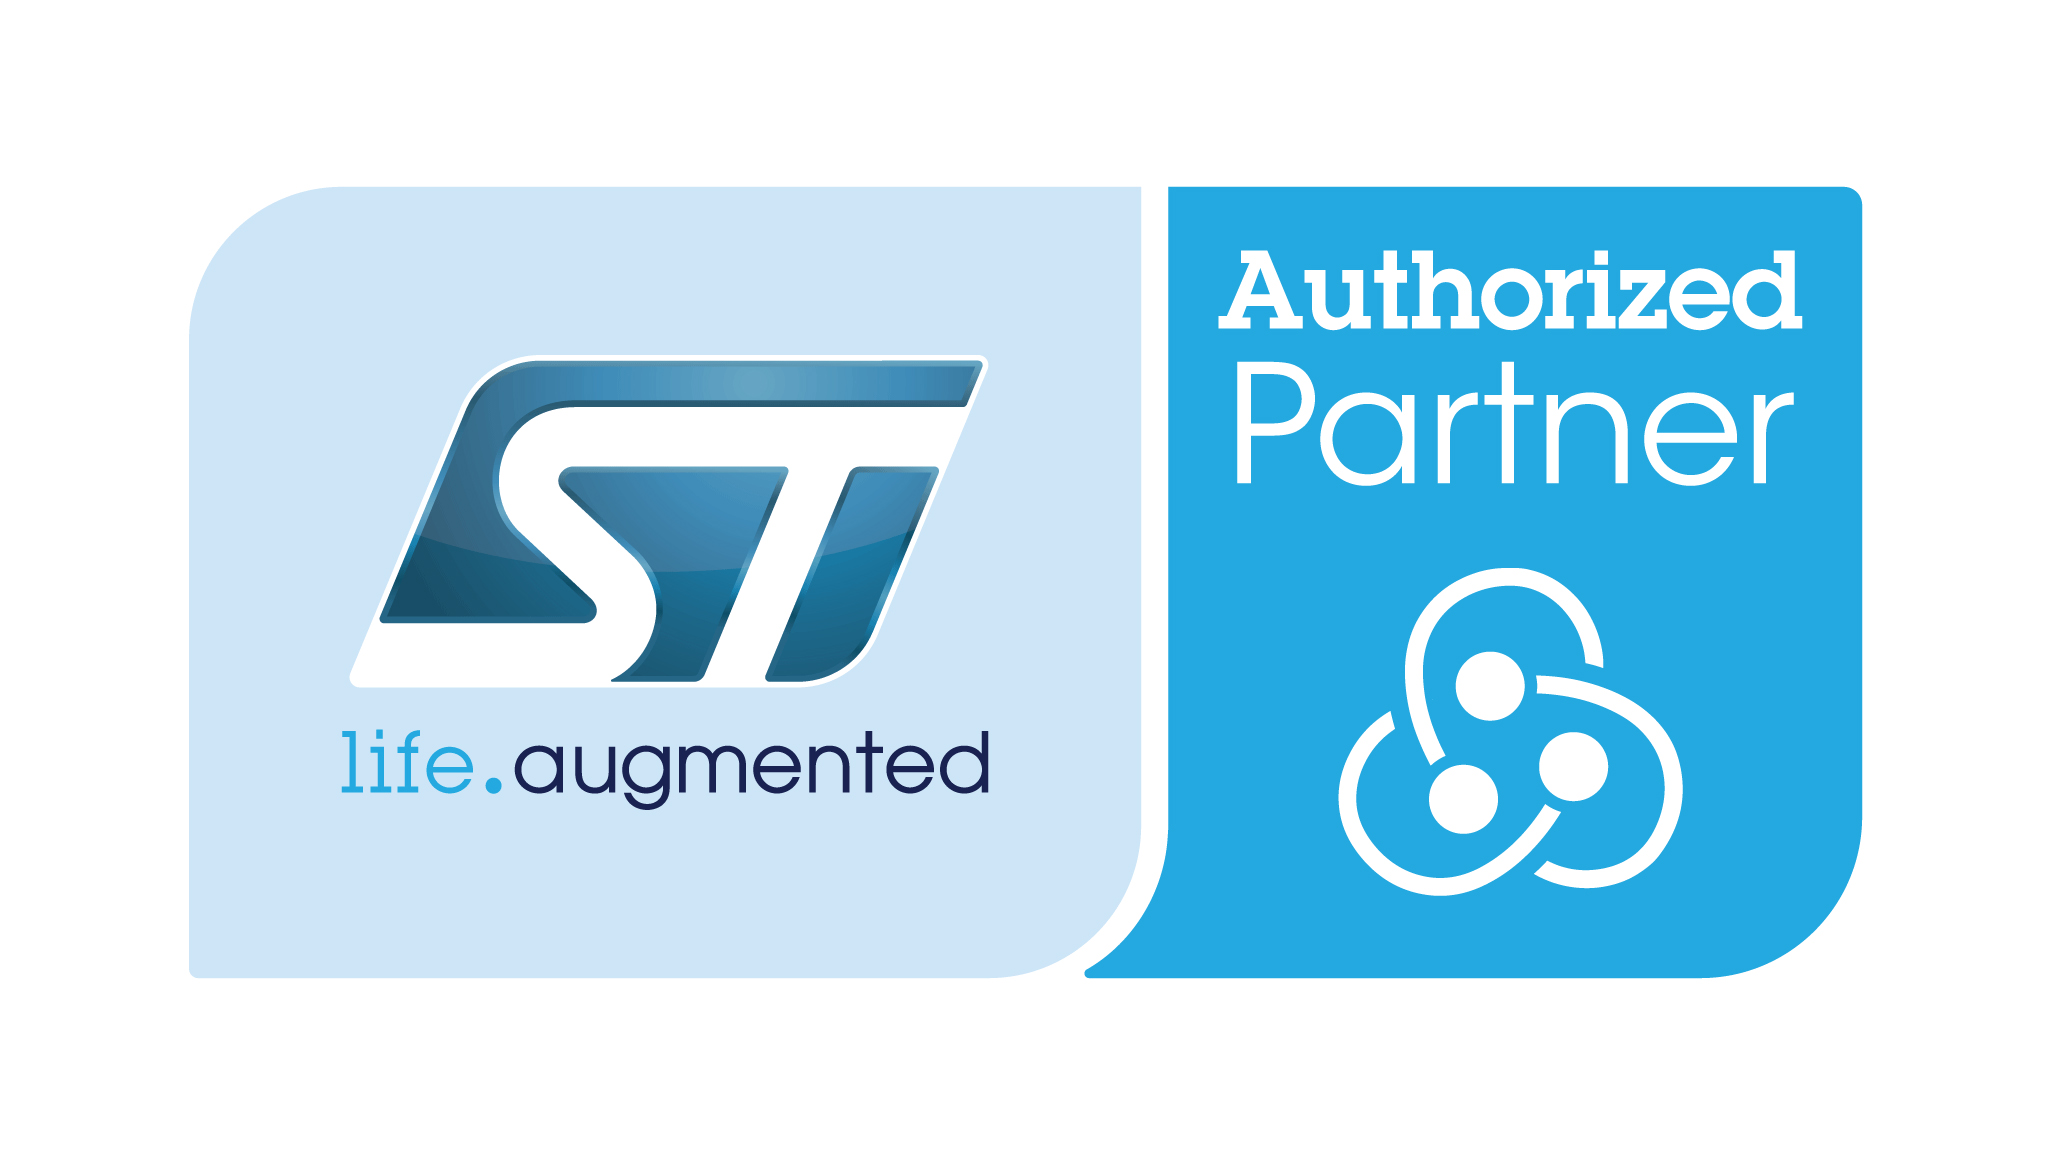 W�rth Elektronik eiSos joins STMicroelectronics Partner Program to one common goal: success for their customer!